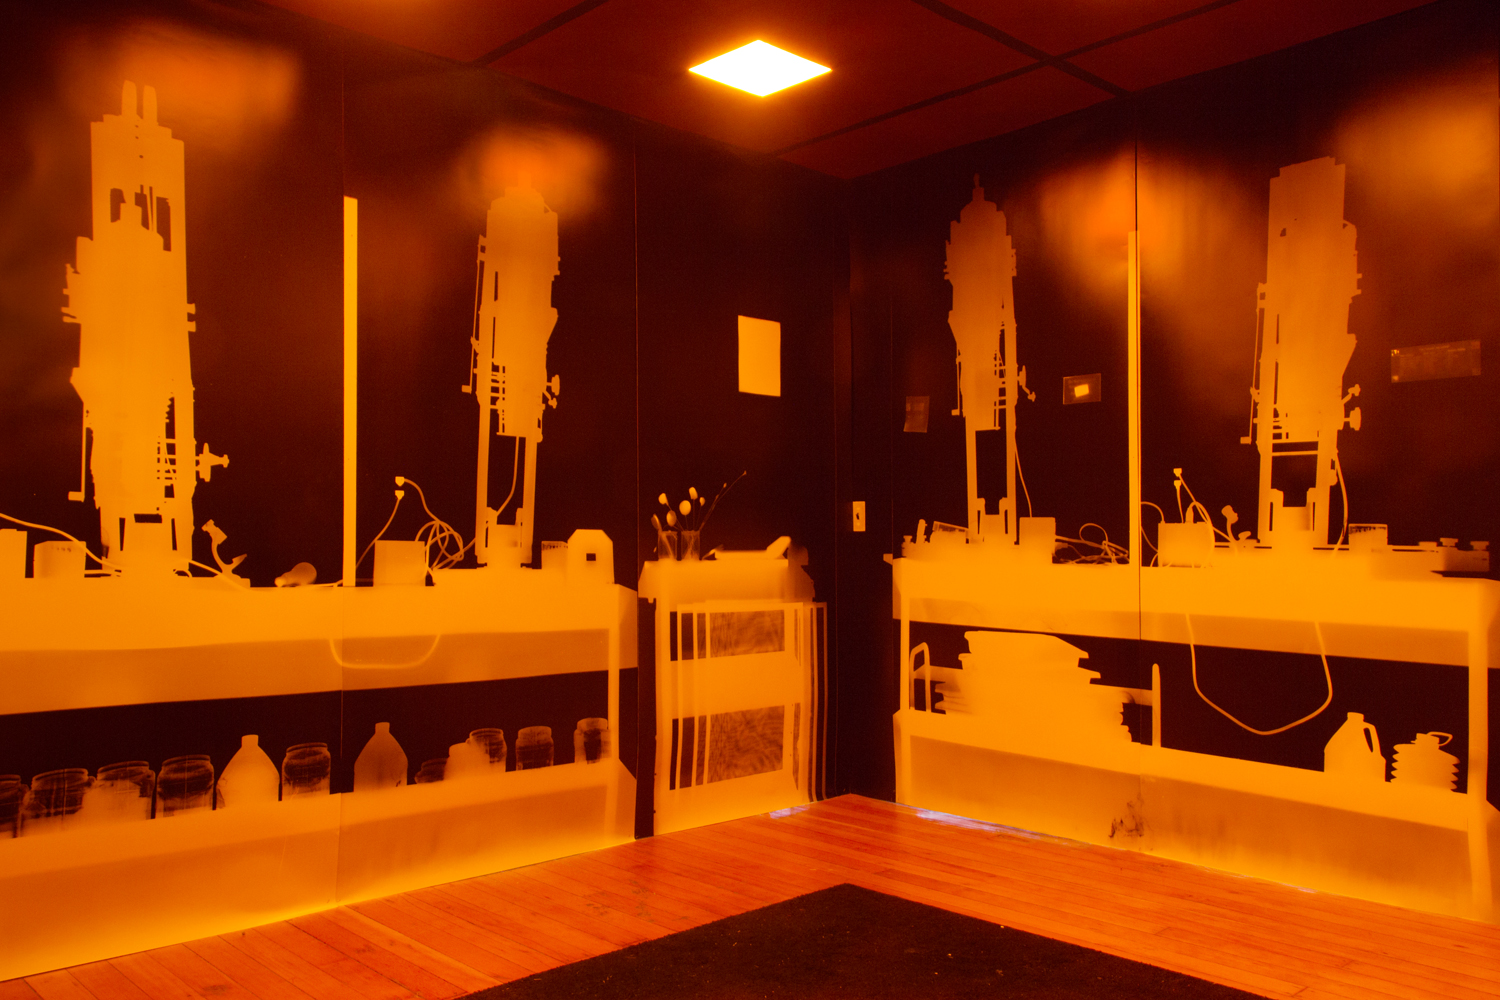 This Darkroom's Gone to Heaven (SF), 2012